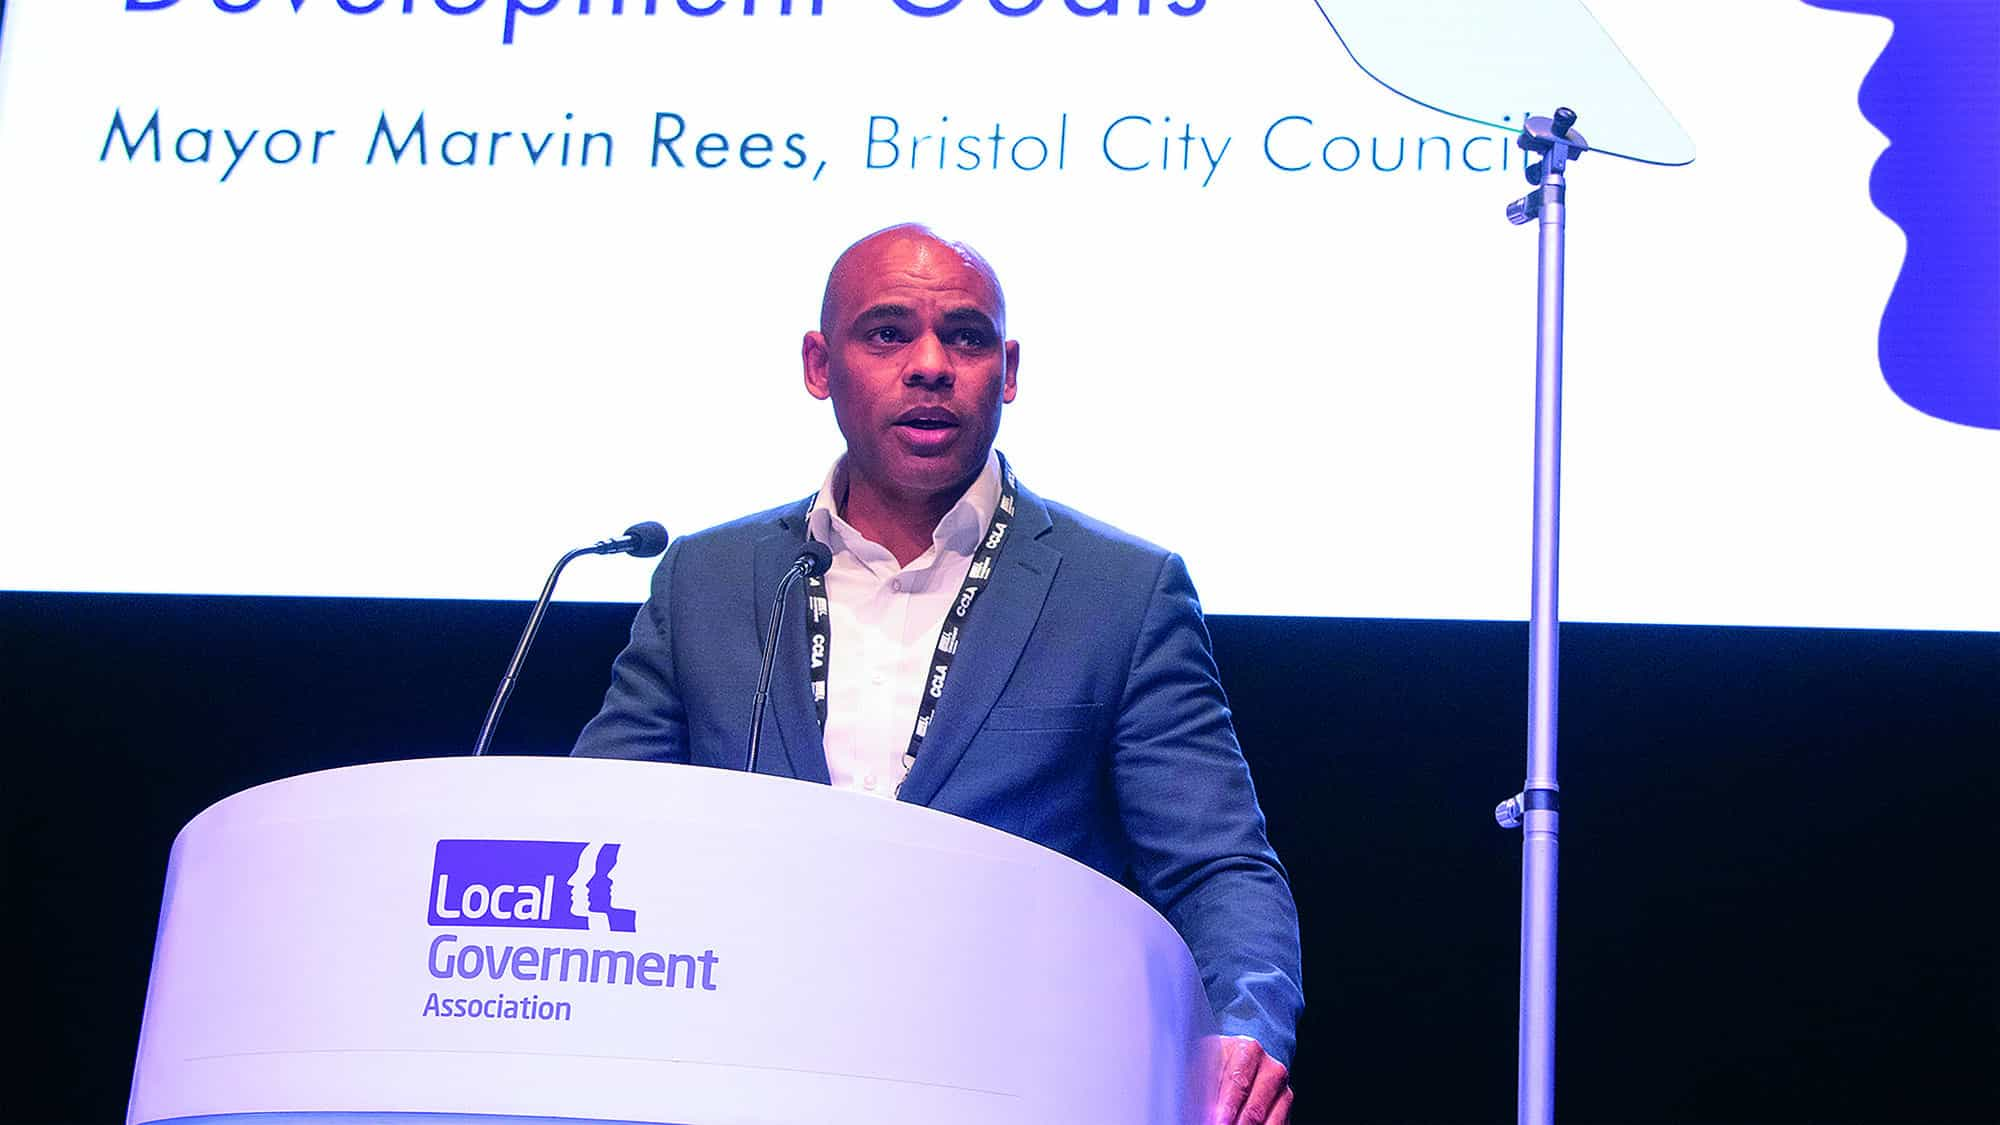 Mayor Marvin Rees. Bristol City Council on stage